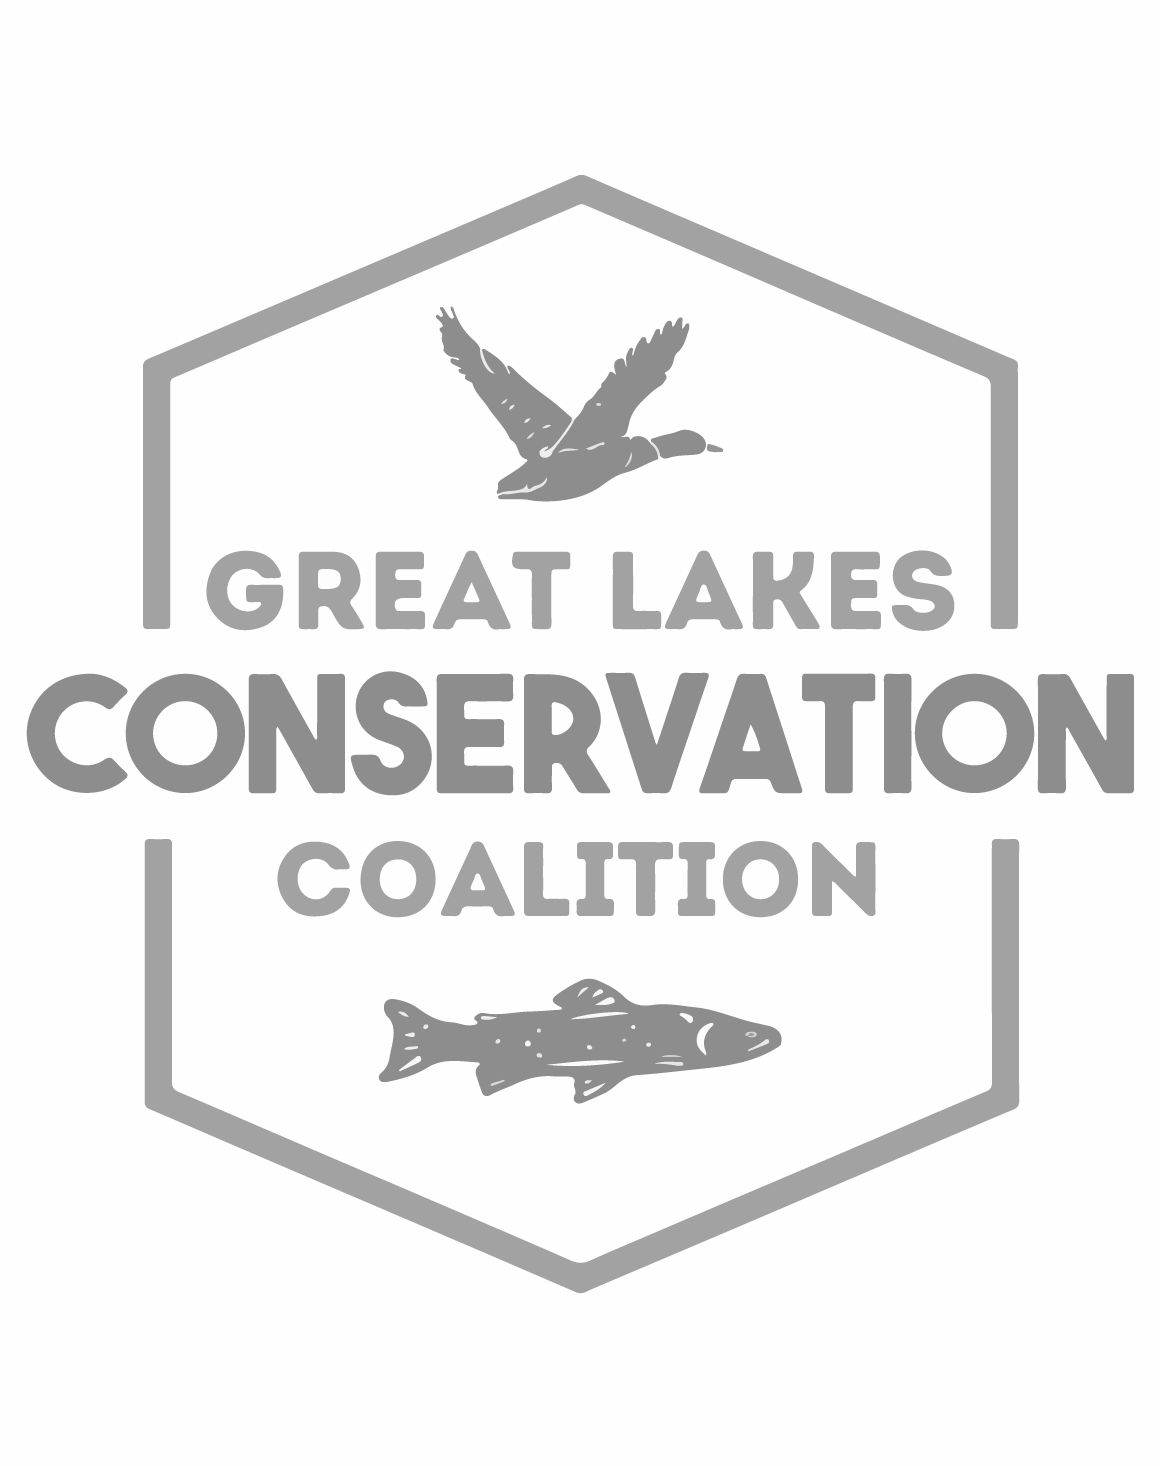 Great Lakes Conservation Coalition